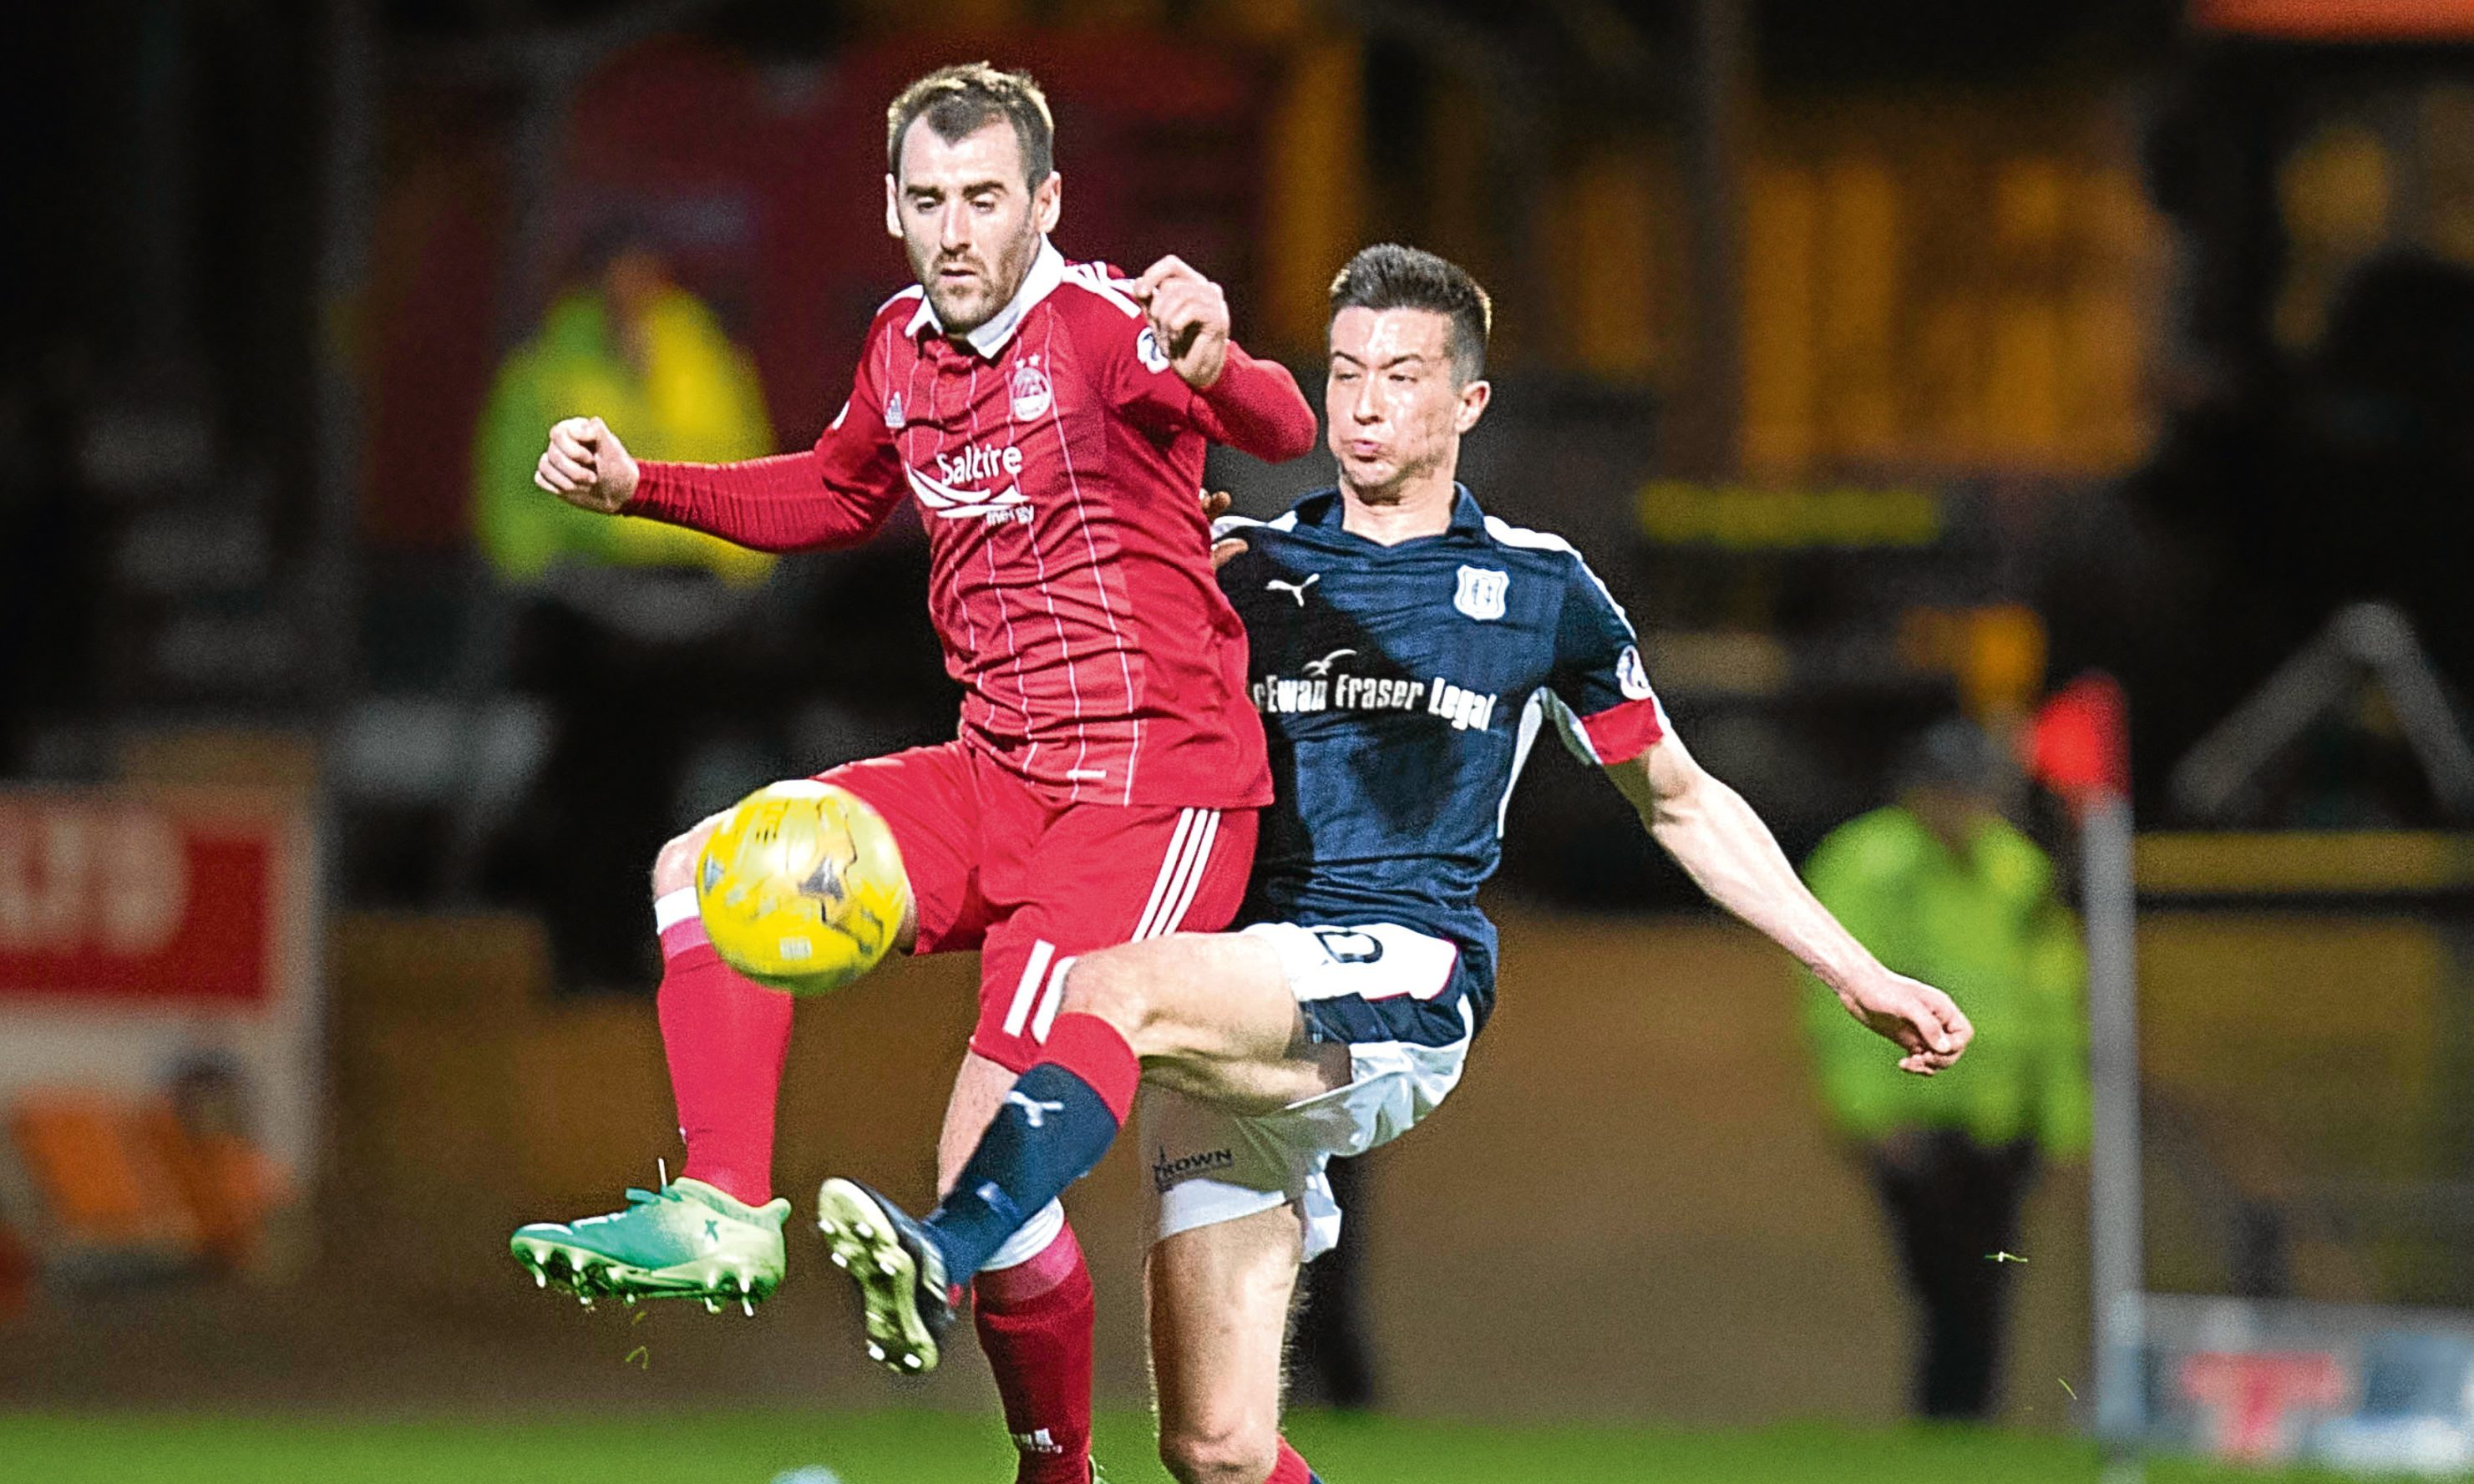 Cammy Kerr challenges Niall McGinn during Friday night's game at Dens Park